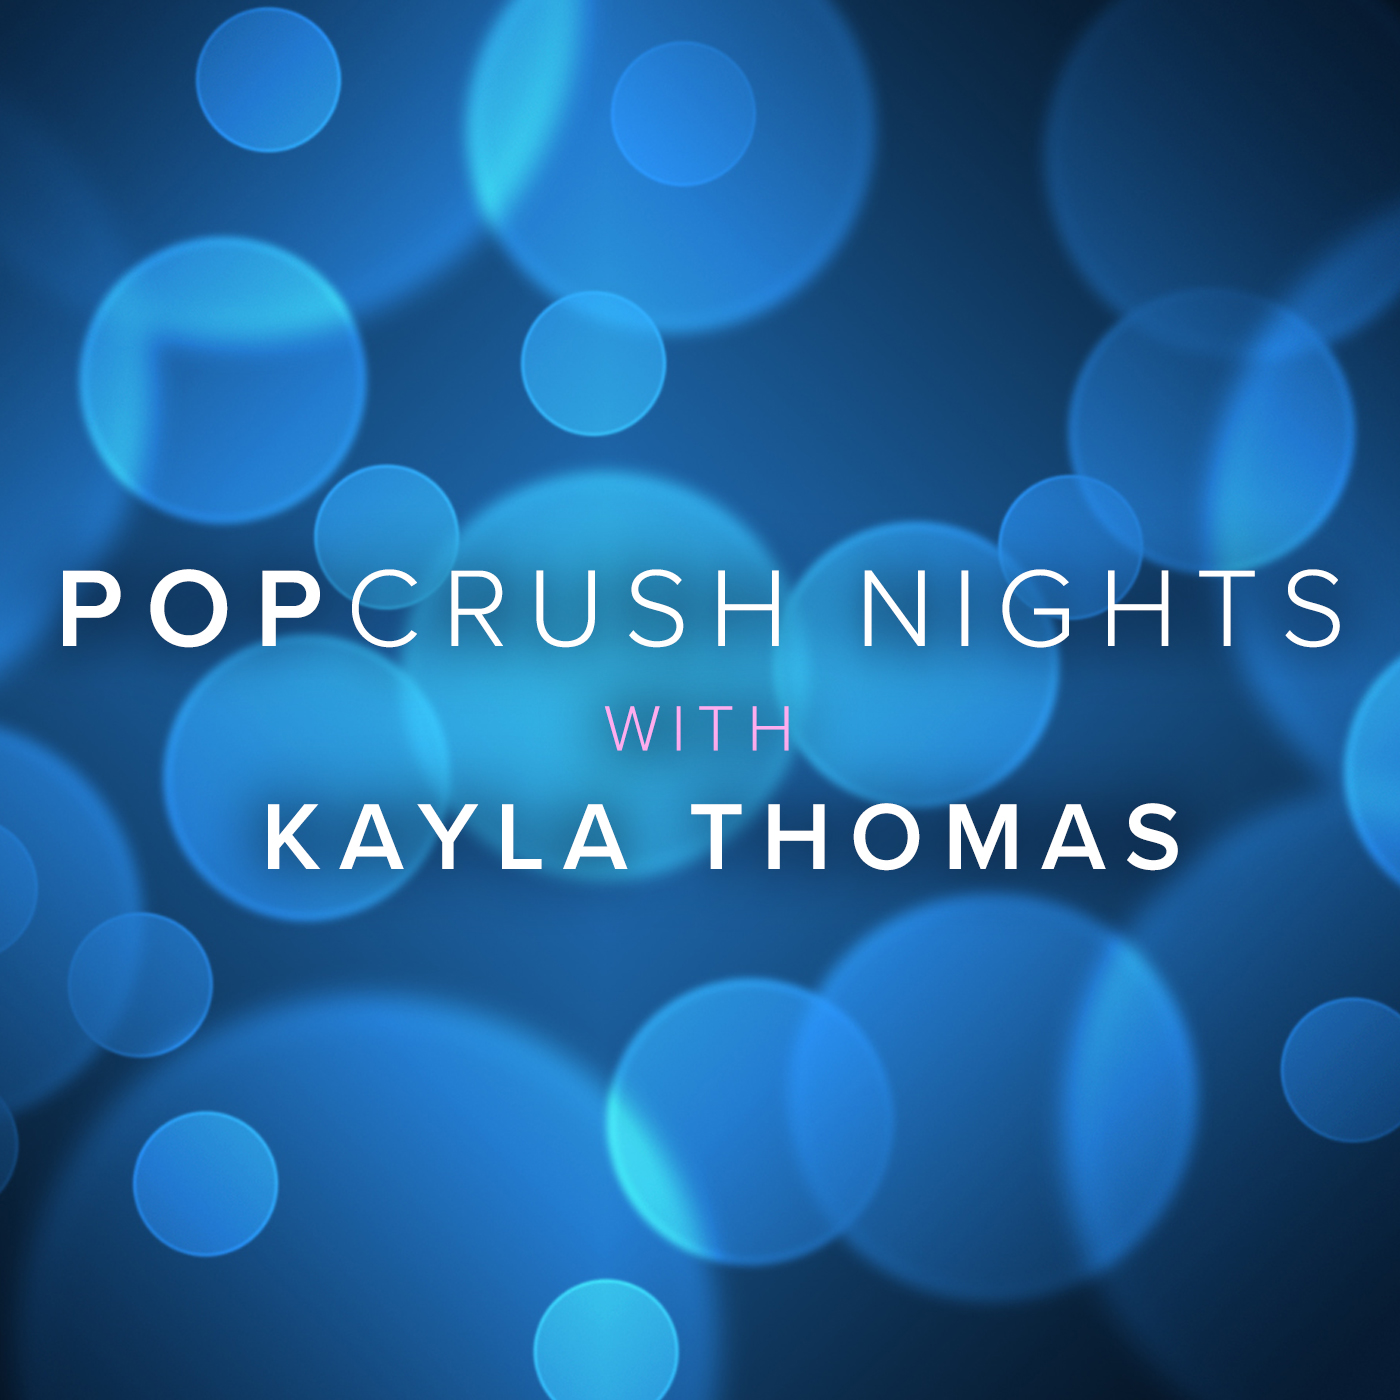 PopCrush Nights with Kayla Thomas